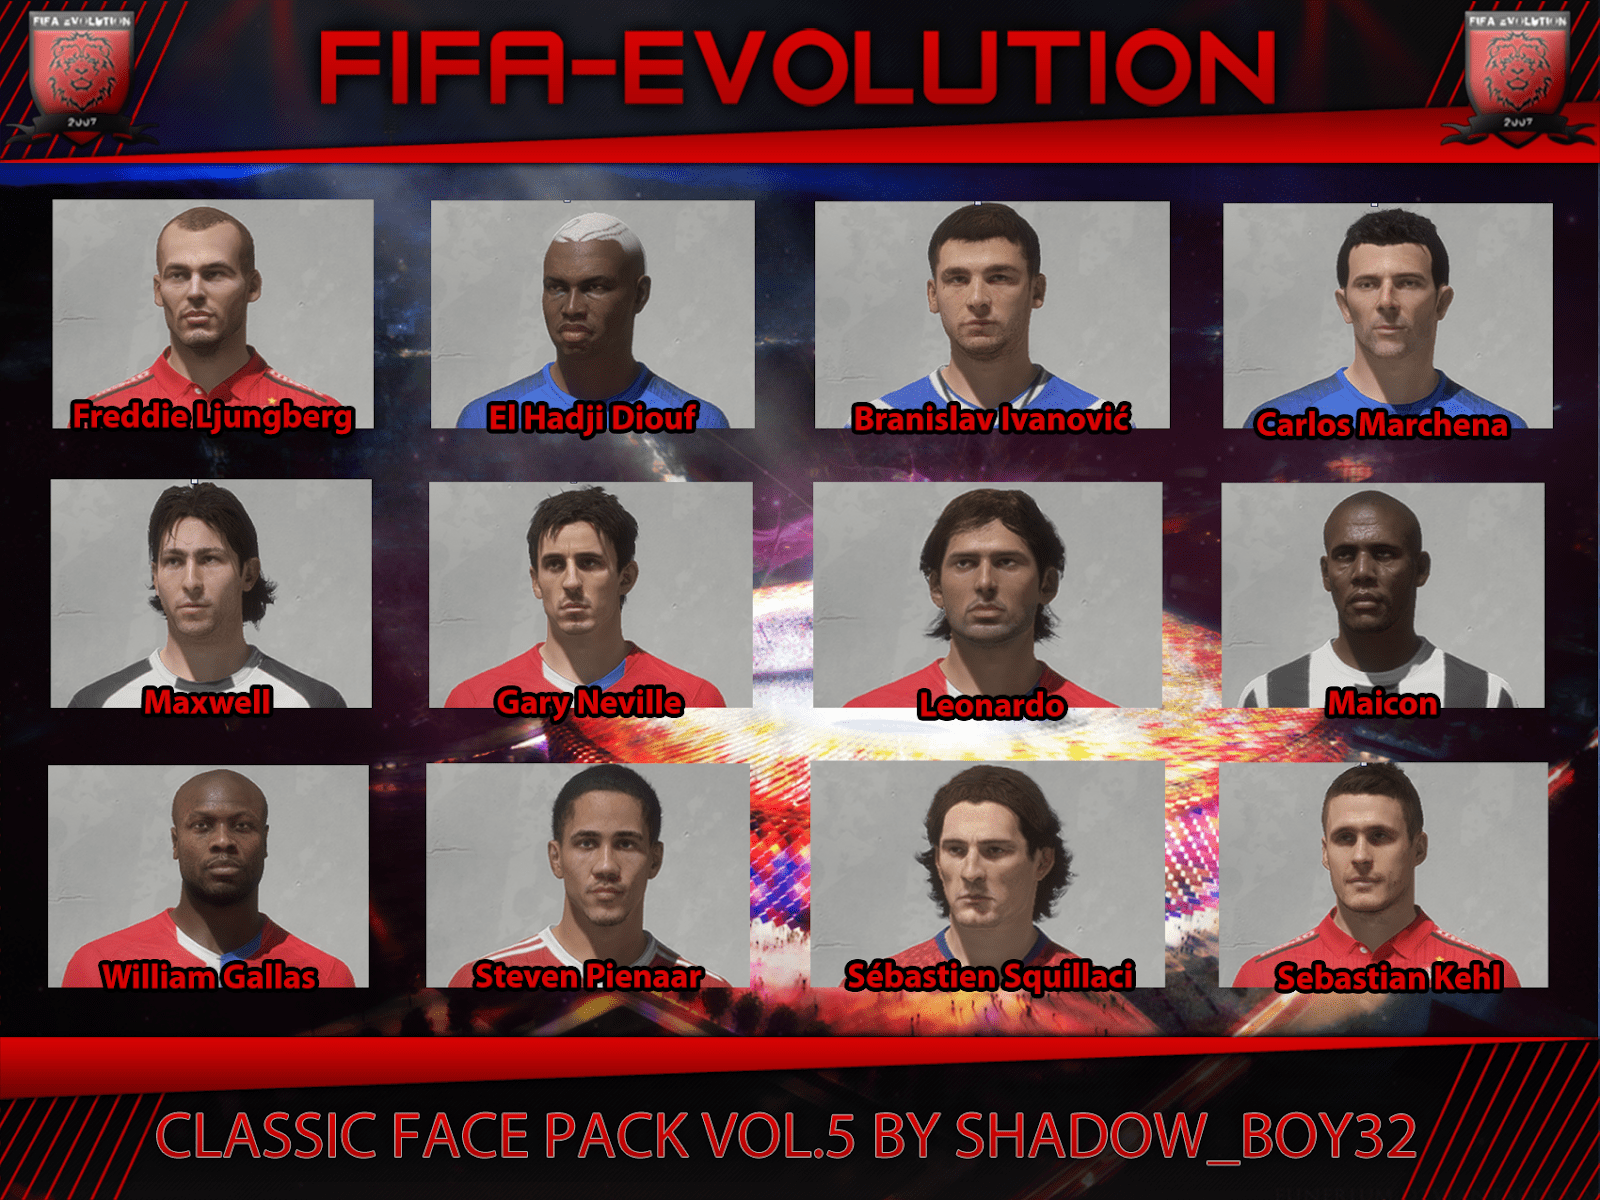 Classic converted face pack vol. 5